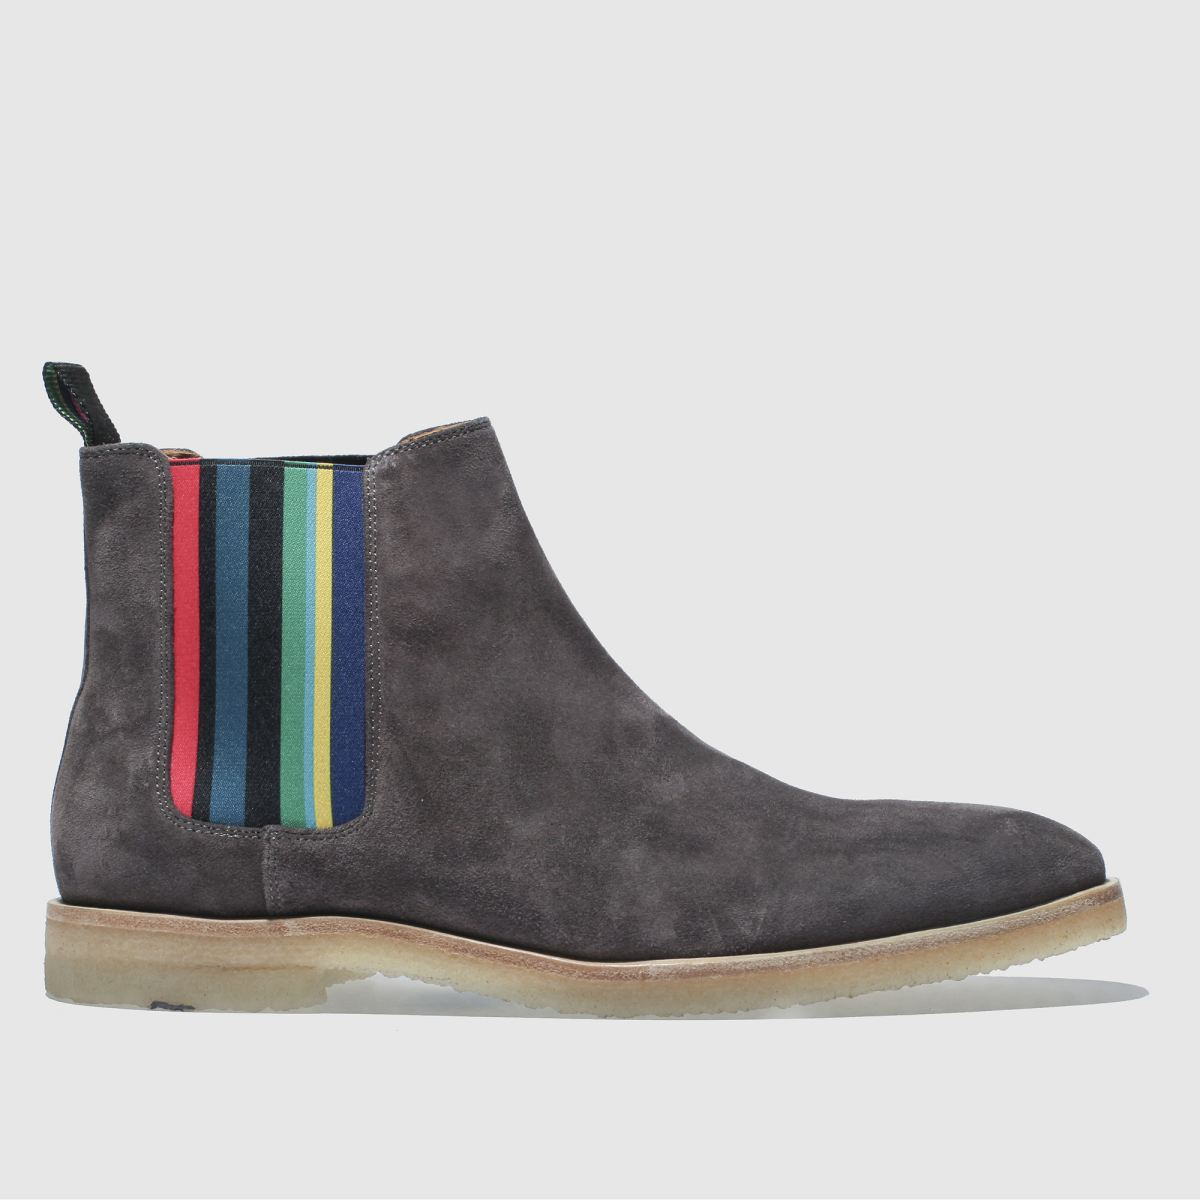 paul smith shoe ps Paul Smith Shoe Ps Dark Grey Andy Boots